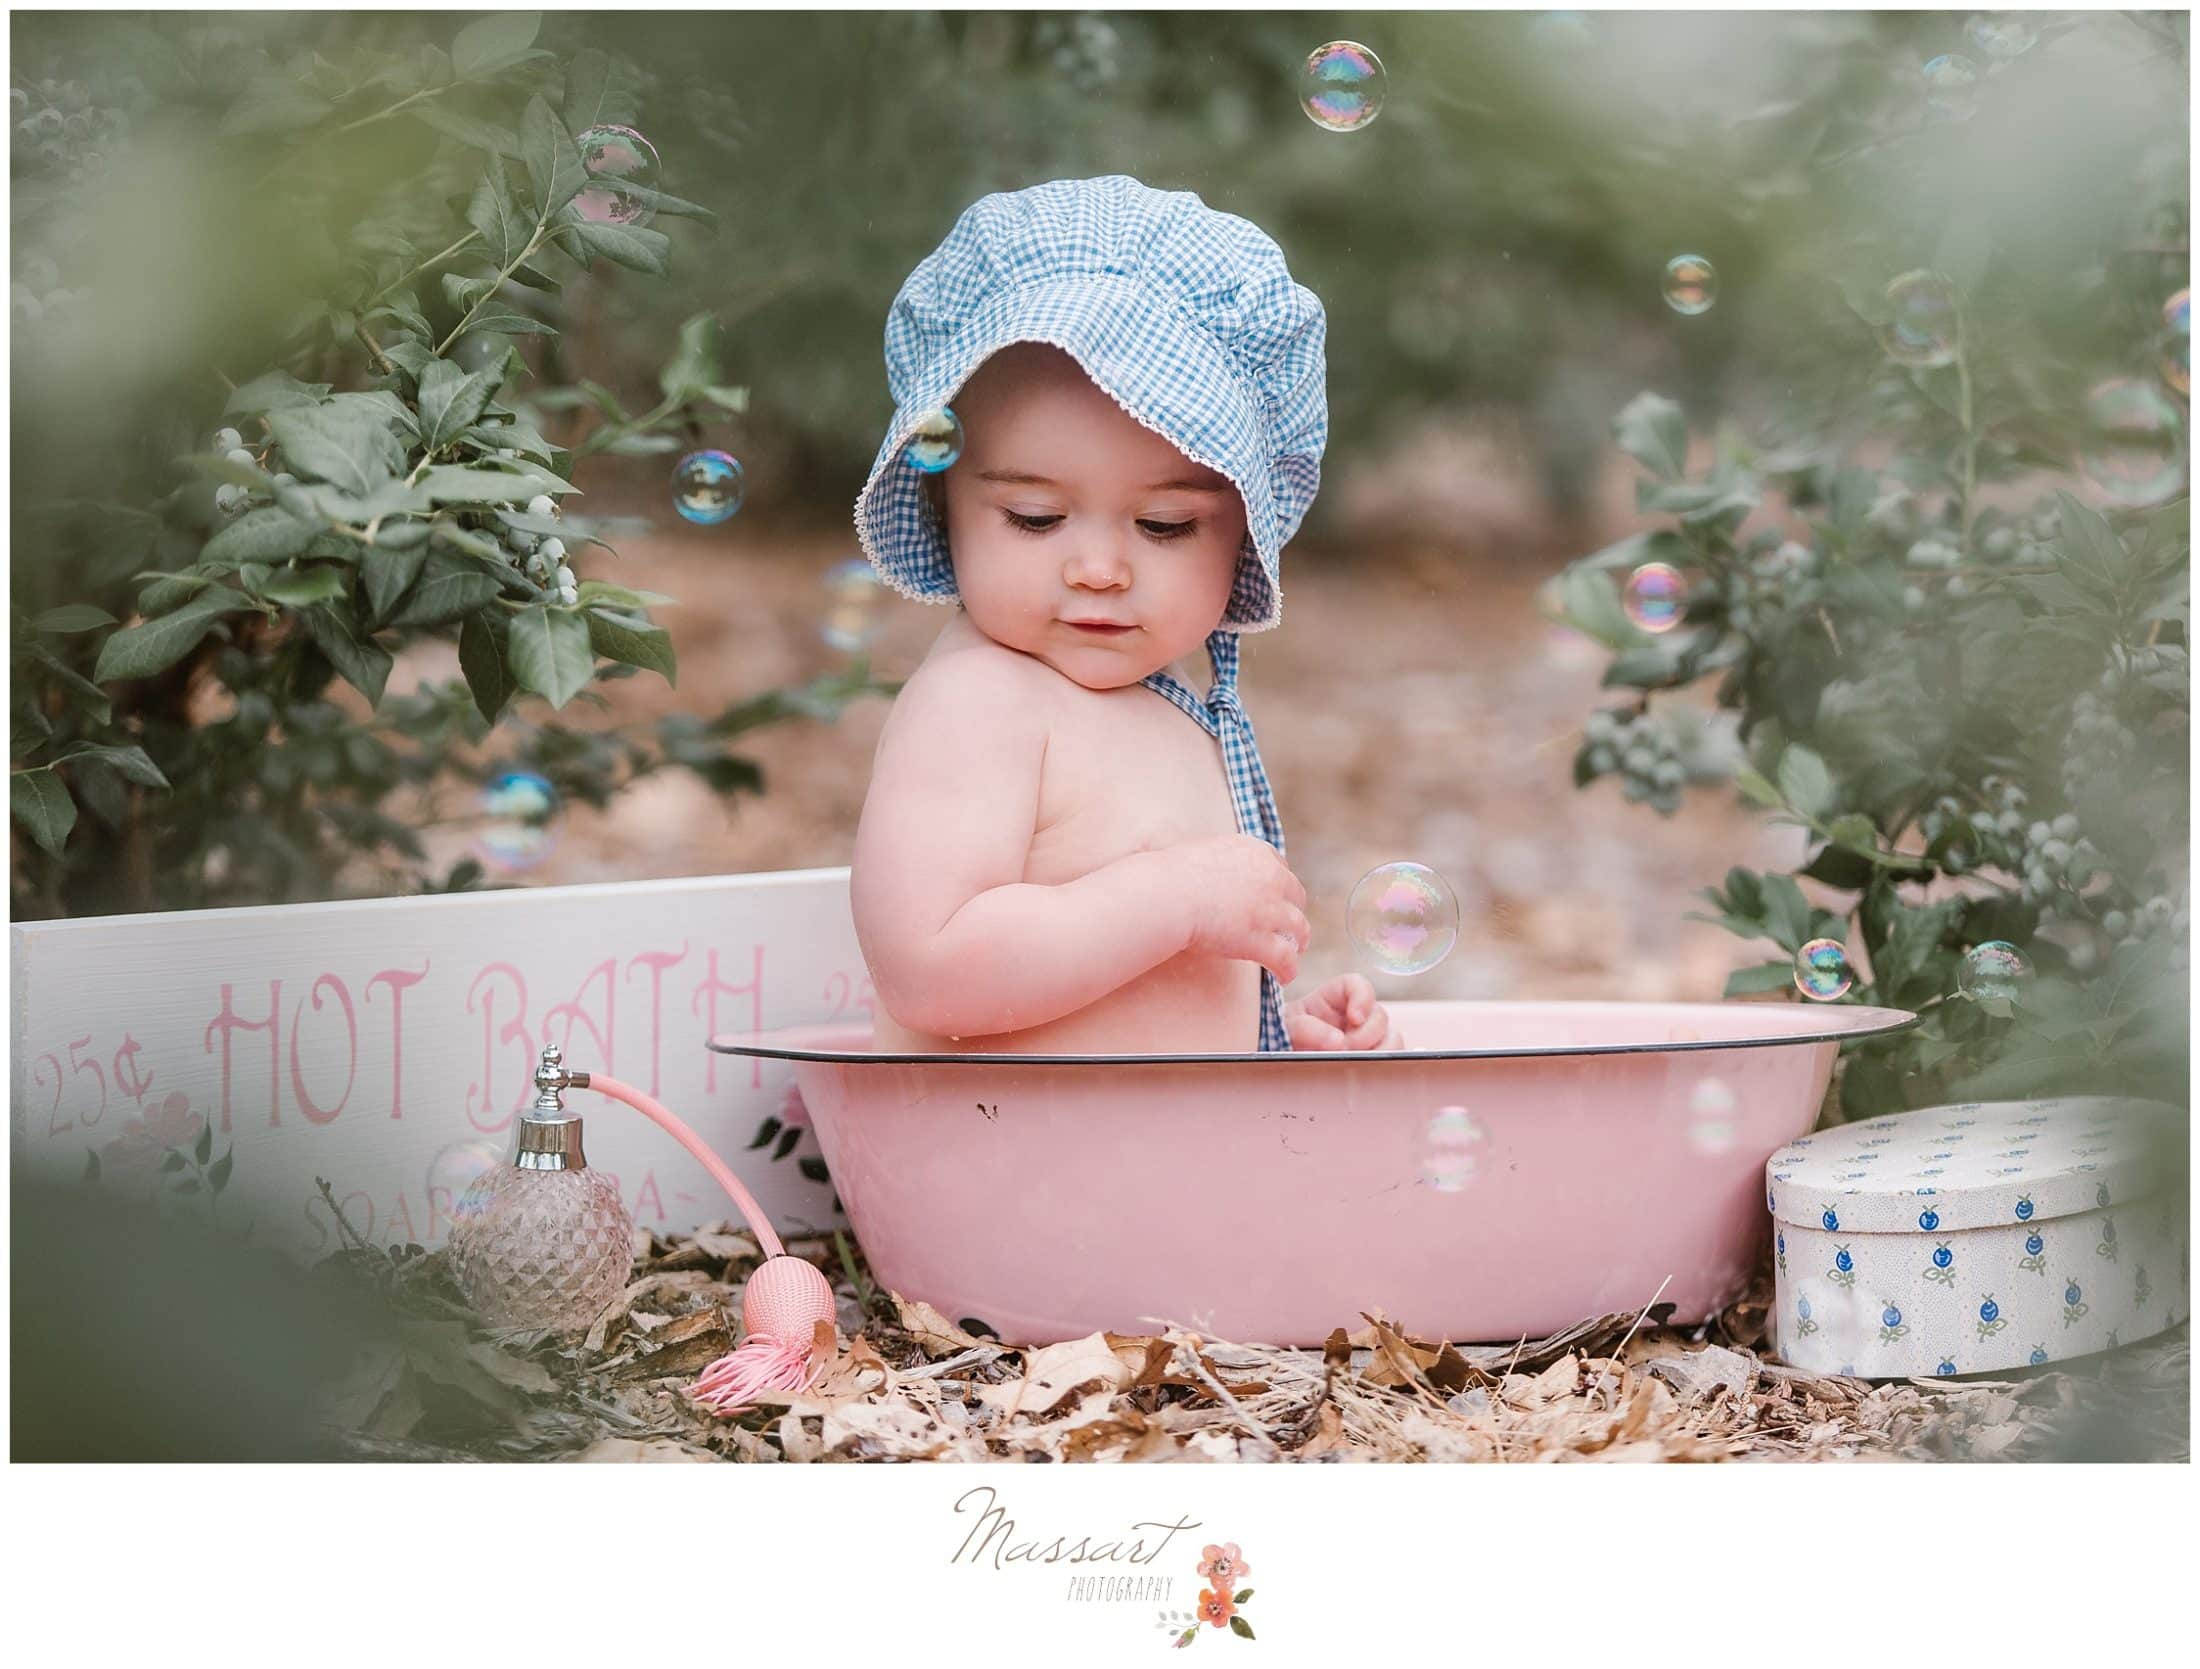 Baby girl sits in rustic bath surrounded by bubbles during her milestone portrait session photographed by Massart Photography of Rhode Island